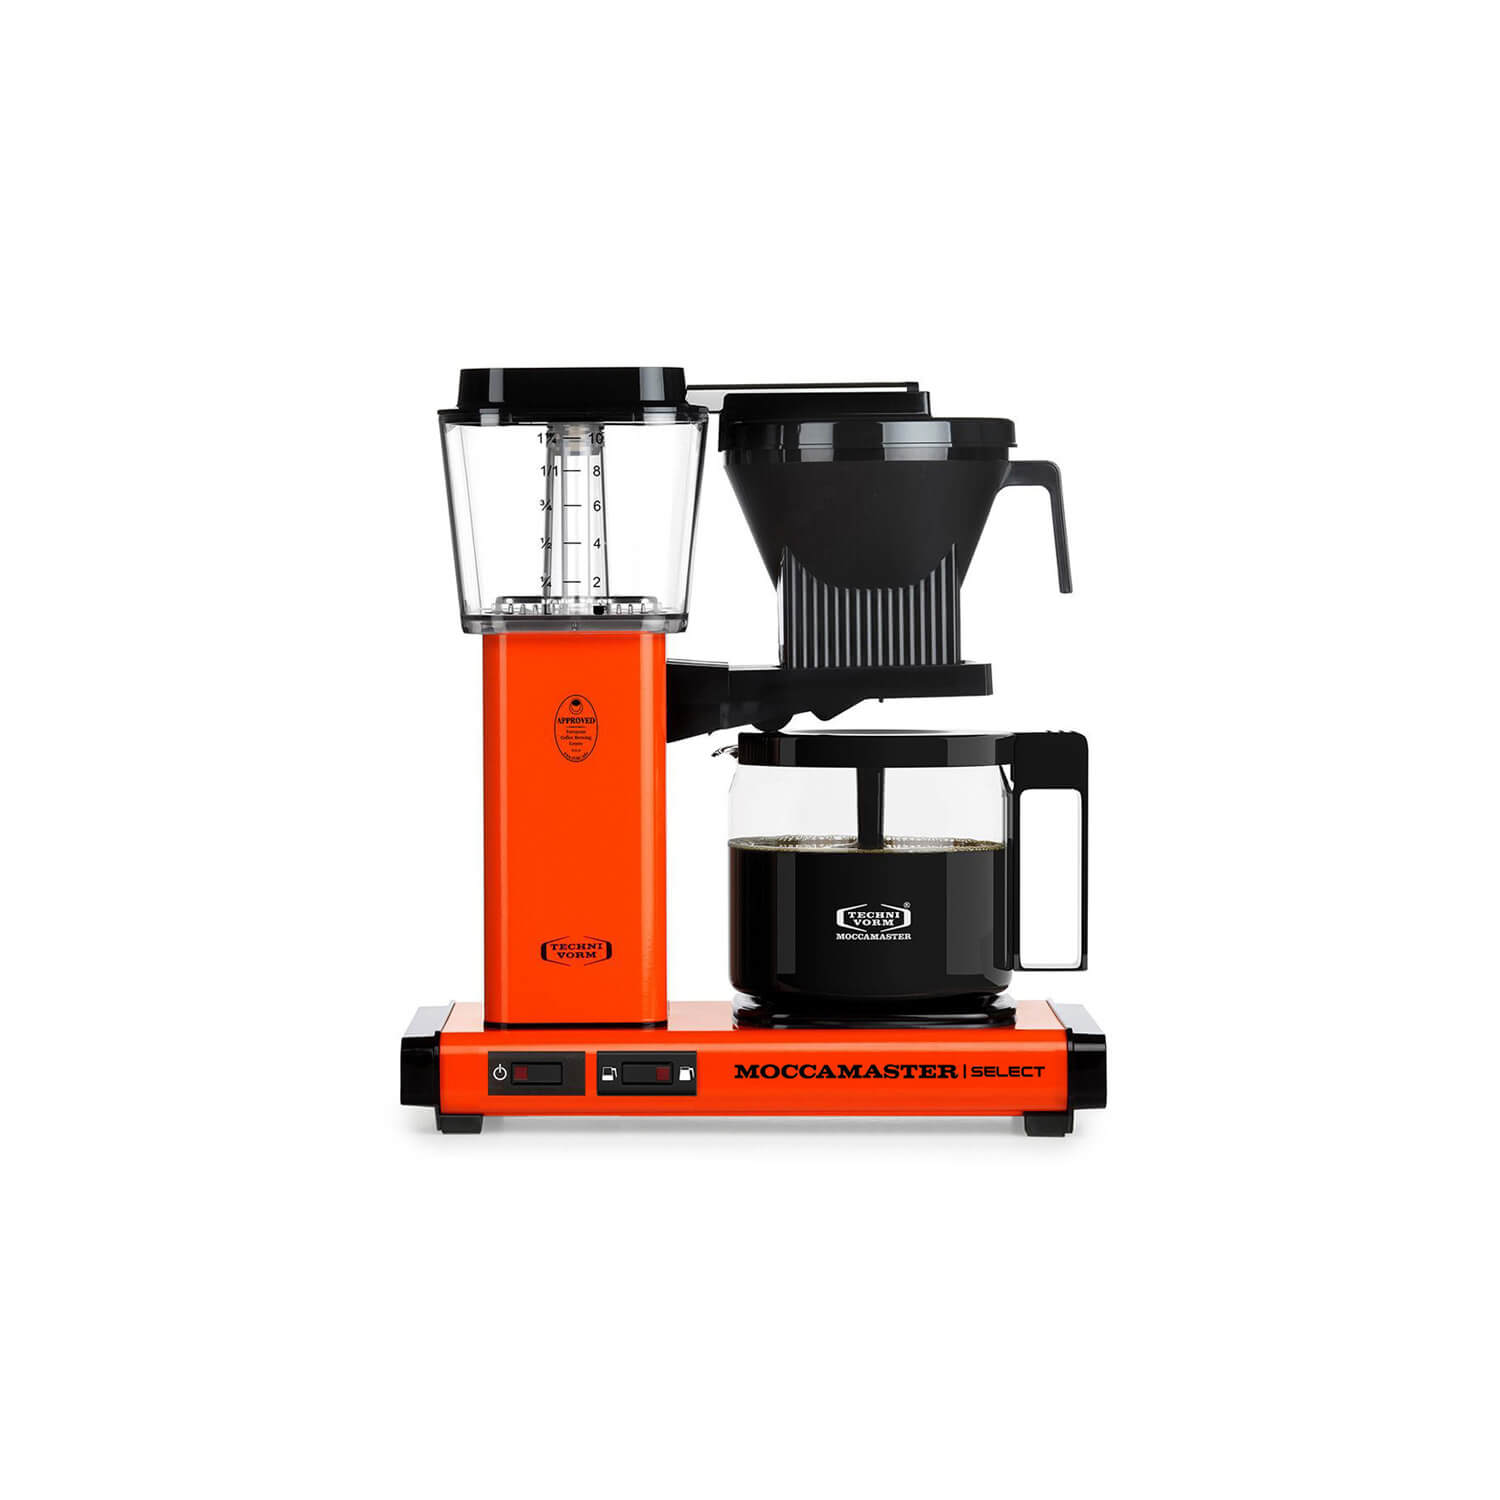 Moccamaster - koffiezetter - KBG Select - Orange